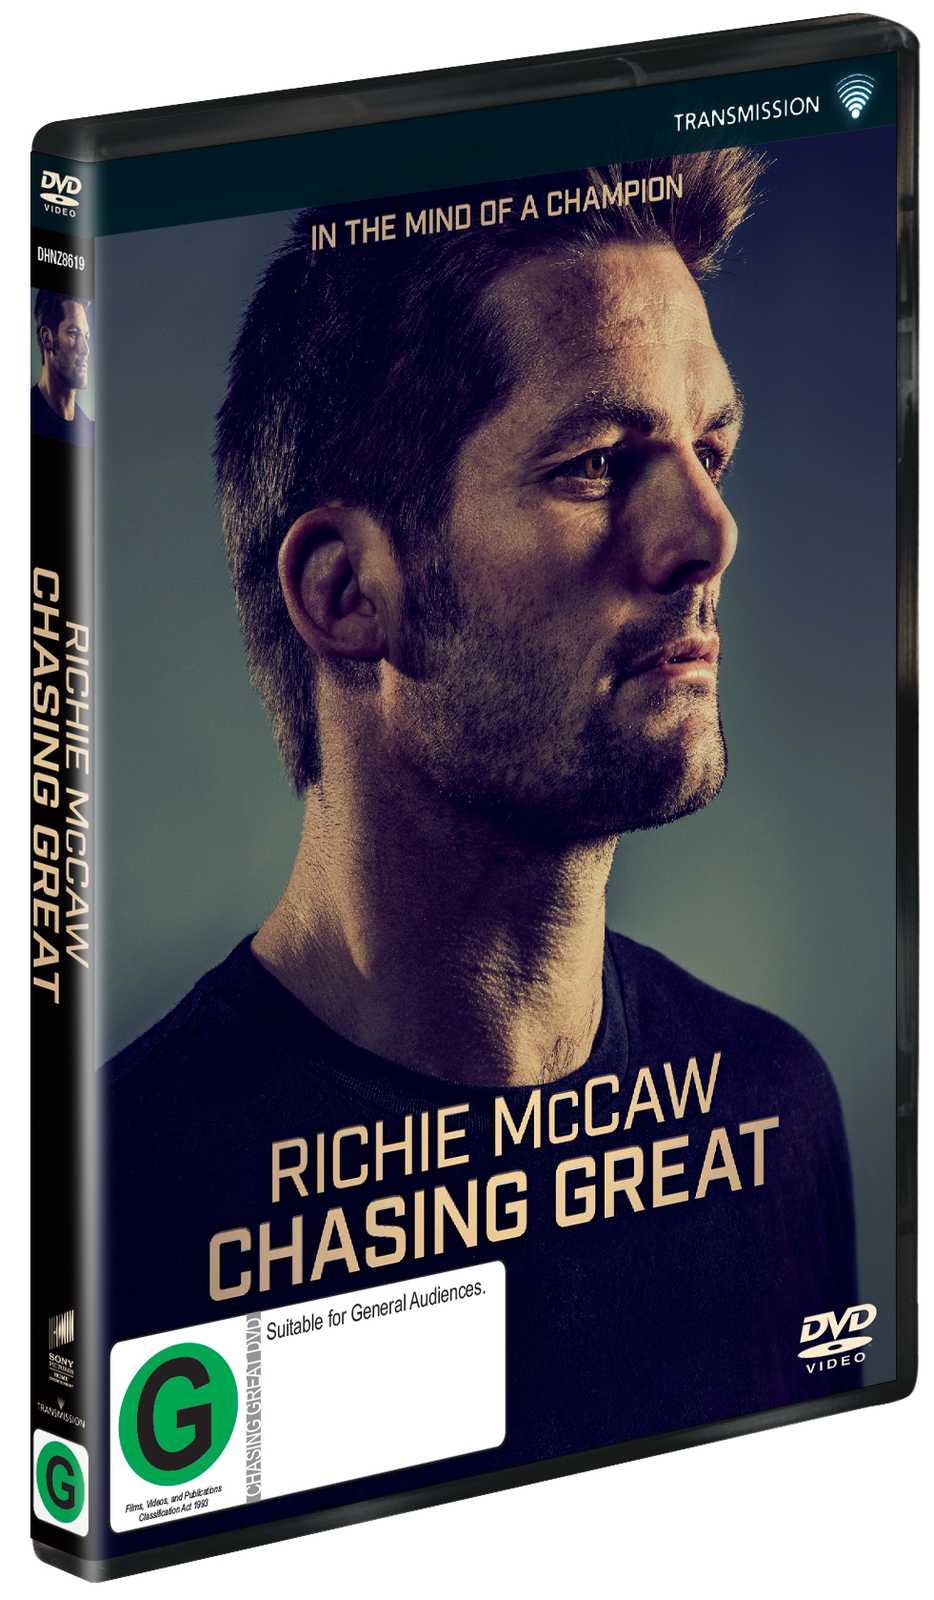 Richie McCaw: Chasing Great on DVD image